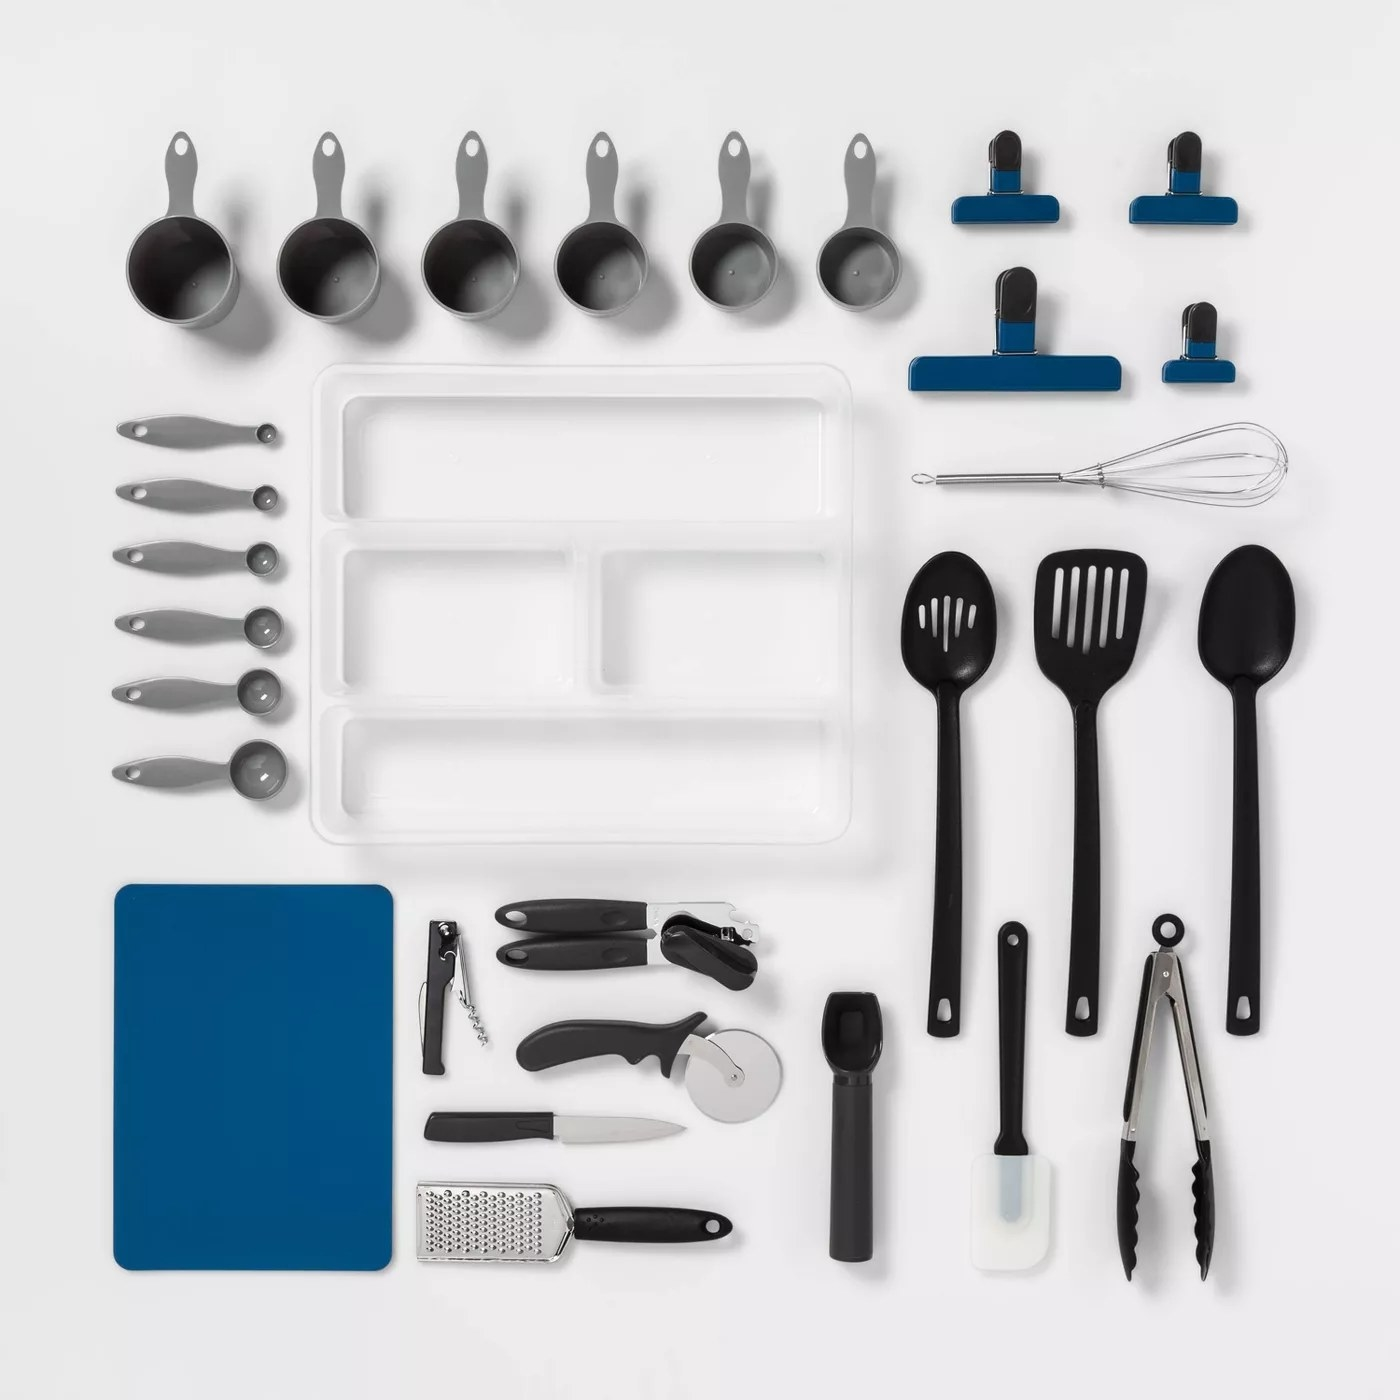 The measuring cups, cooking utensils, a cutting board, chip clips, a corkscrew, an ice cream scoop, a cheese grater, a can opener, and an organizer